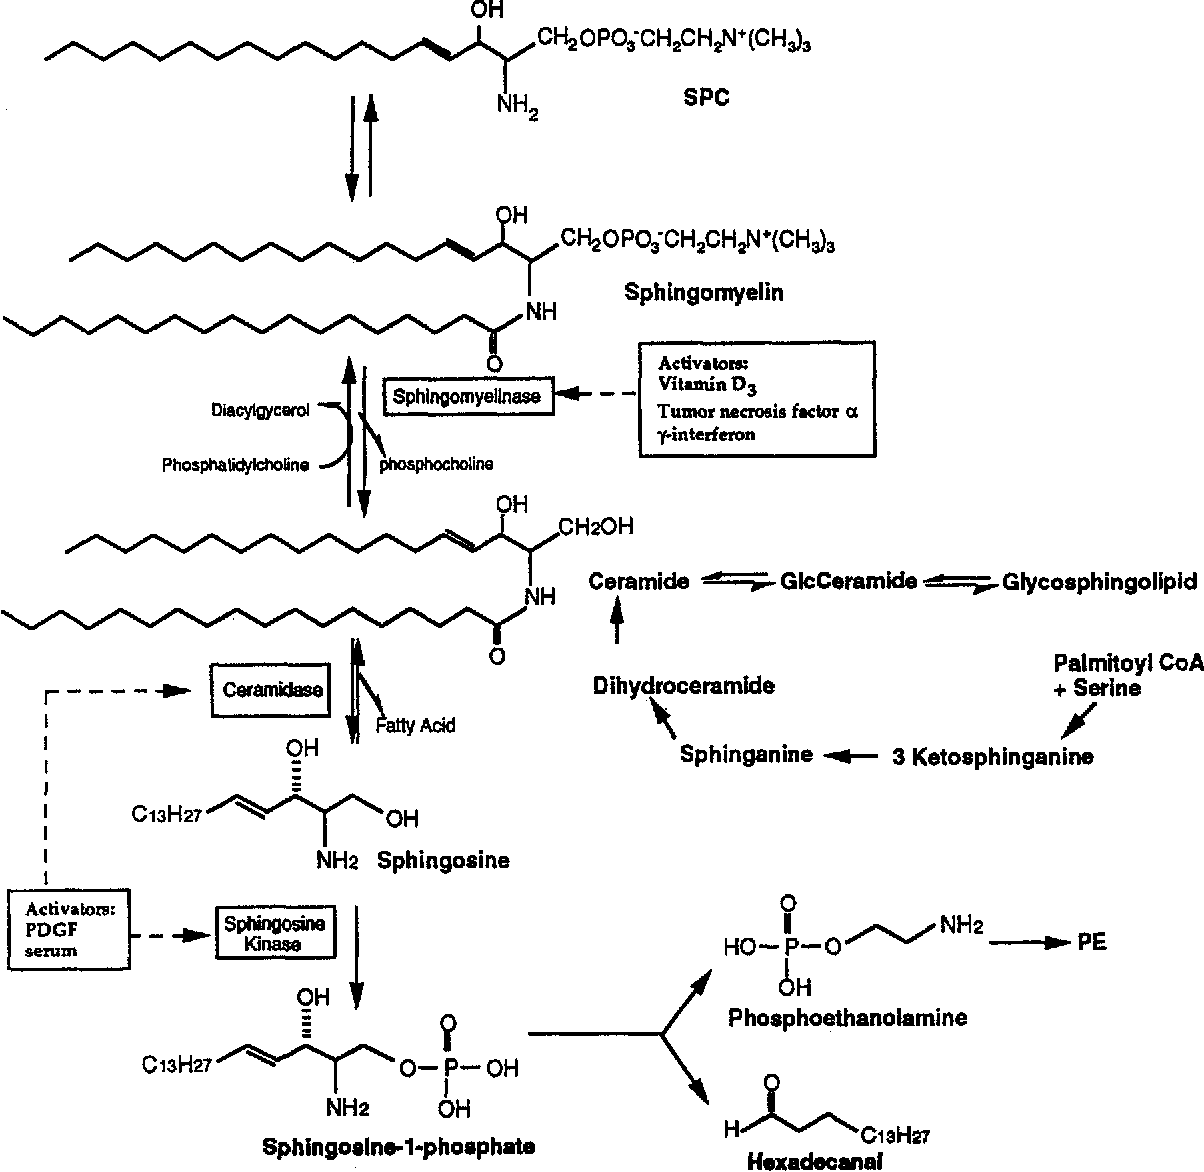 Fig. 1. Sphingolipid metabolic pathways leading to the formation of sphingosine, SPP, and ceramide, putative intracellular second messengers. The influences of growth regulators are indicated. Modified with permission from (Spiegel et al., 1994).